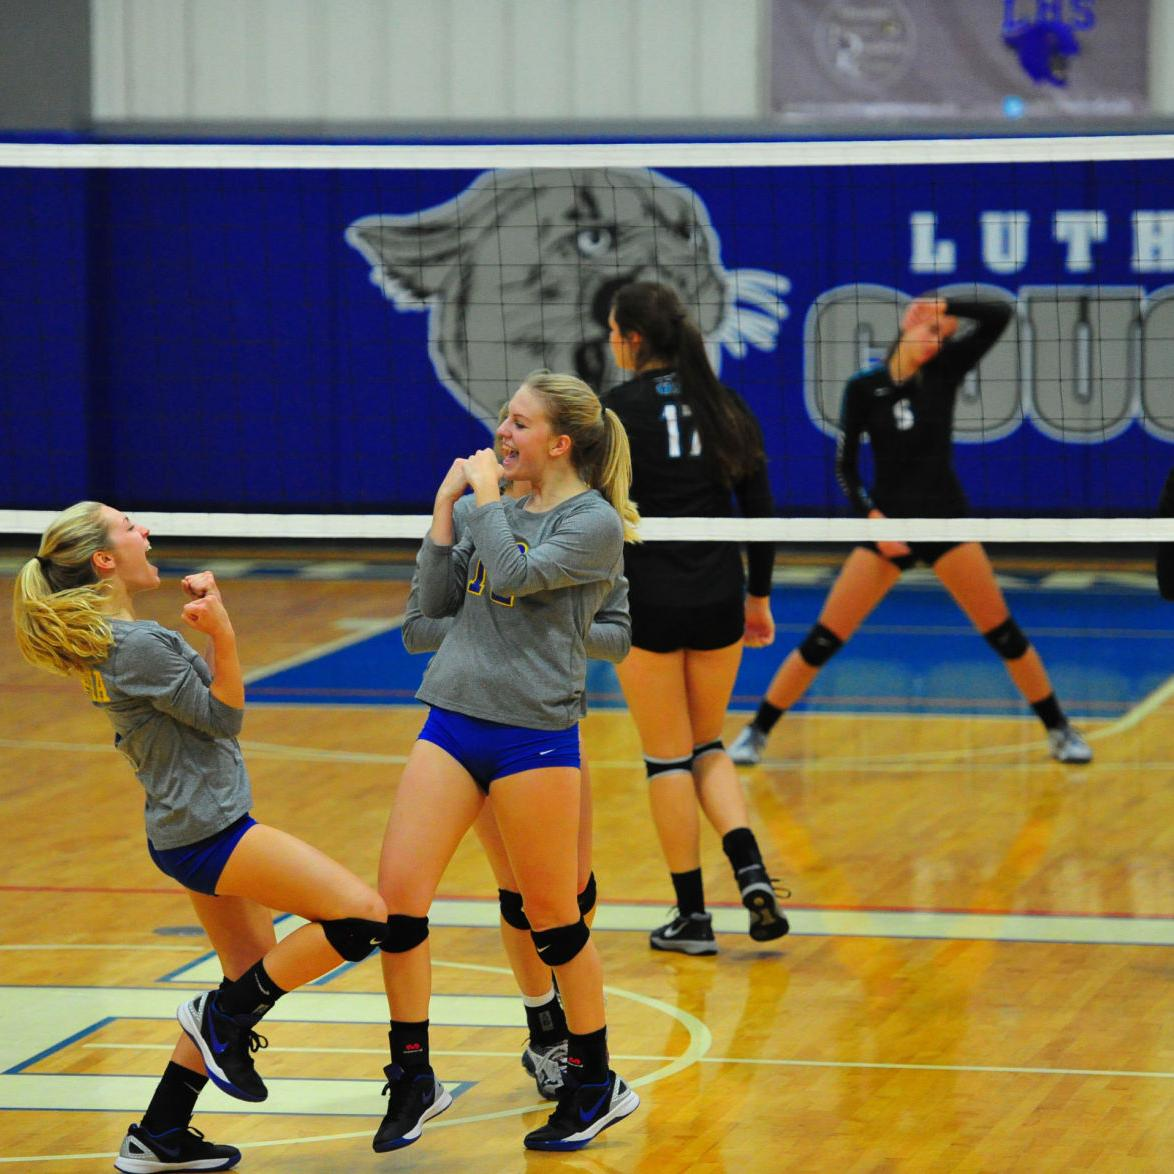 District Volleyball — Borgia vs. O'Fallon Christian